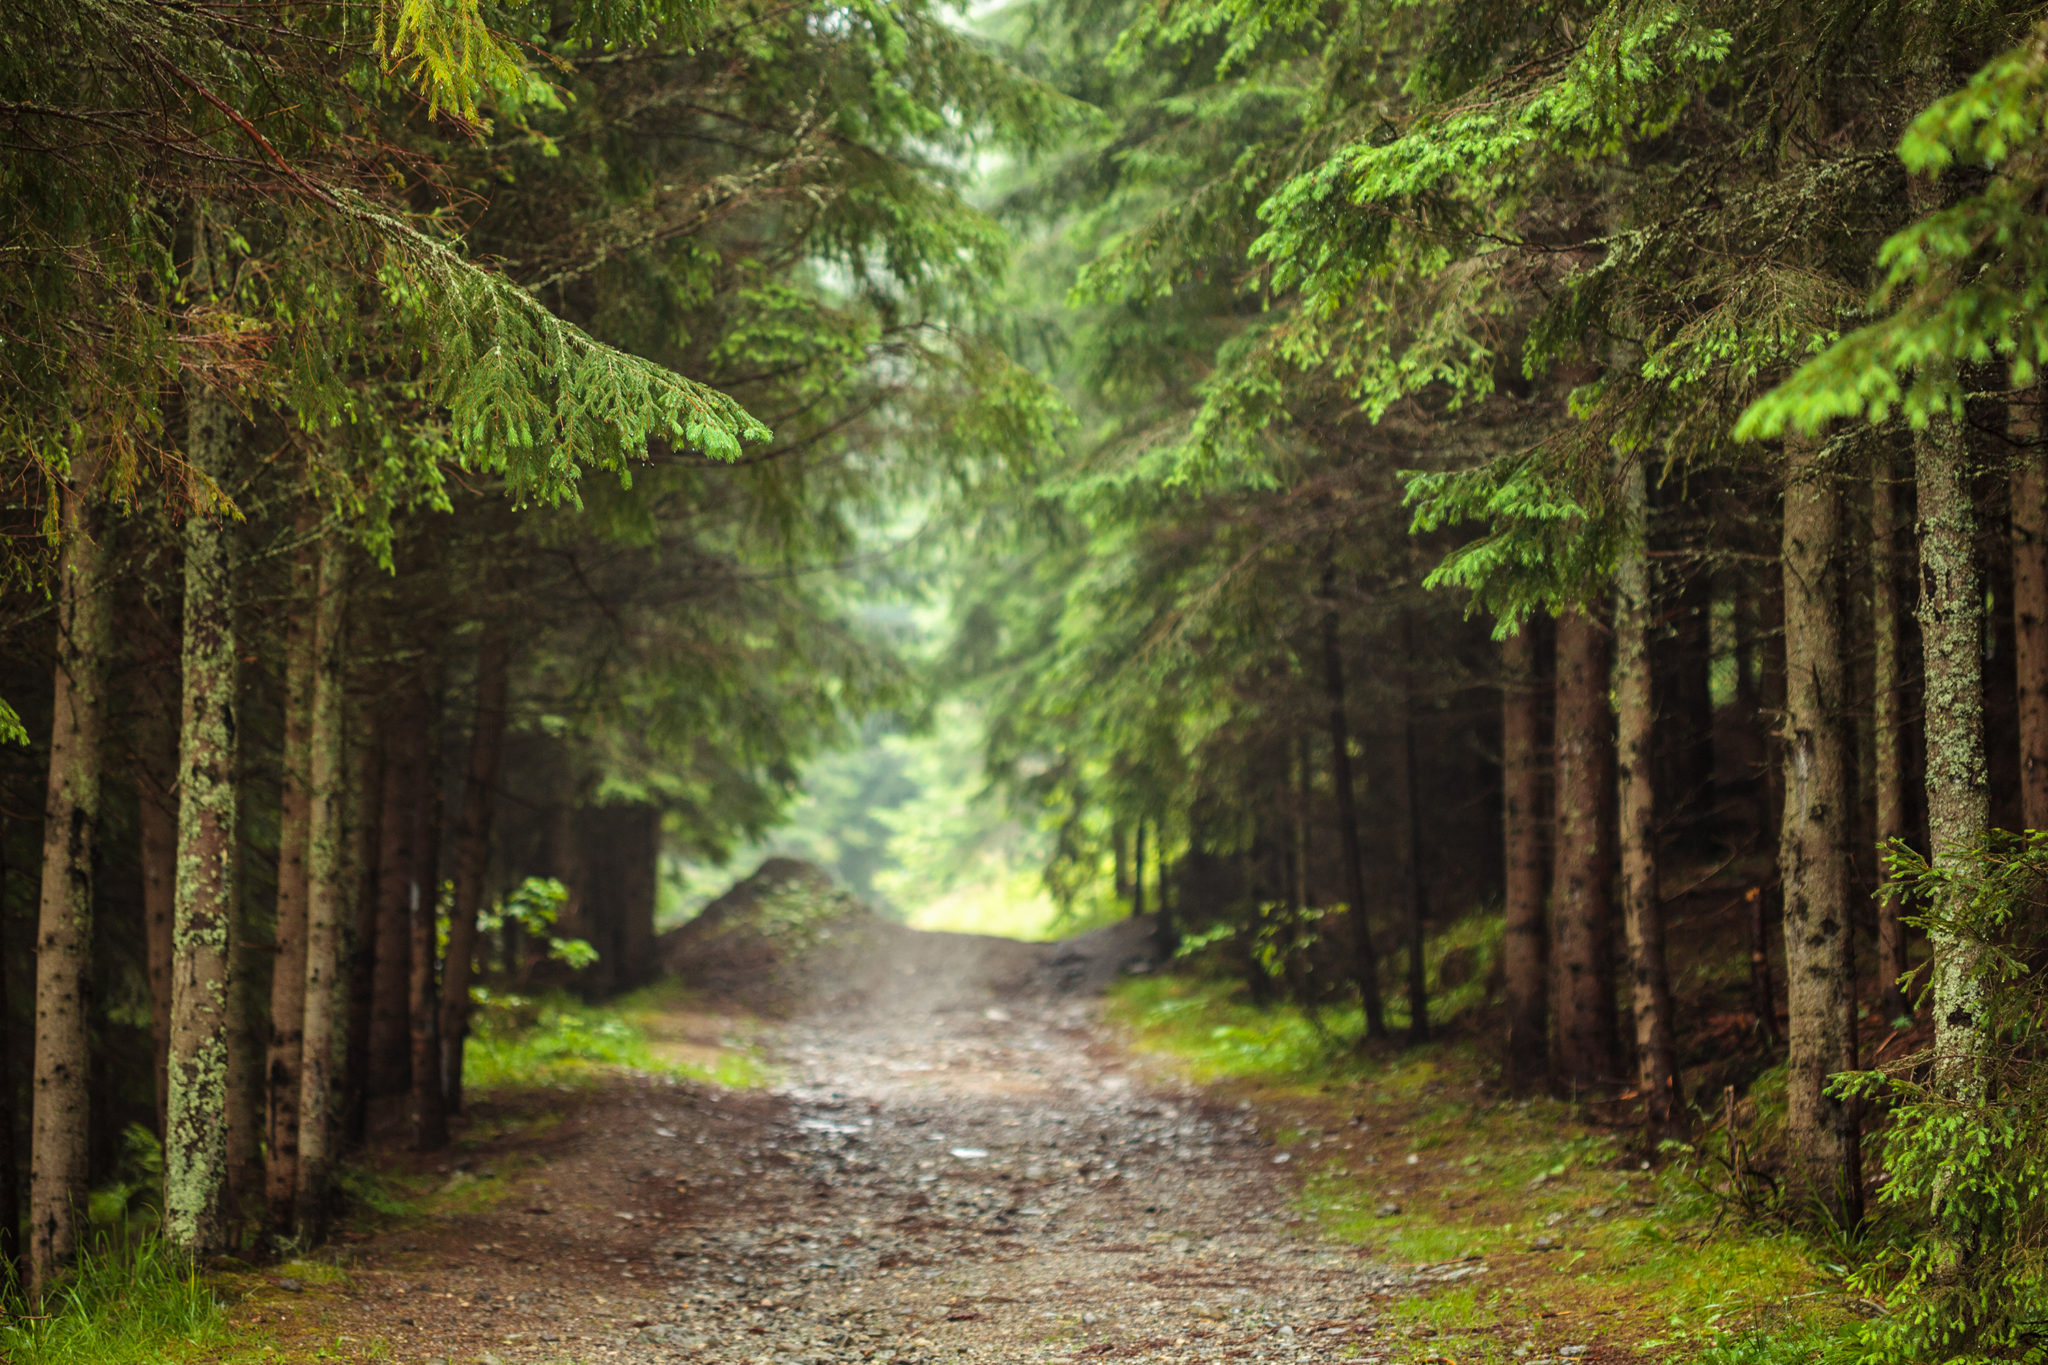 Dirt road through pine forest with selective focus